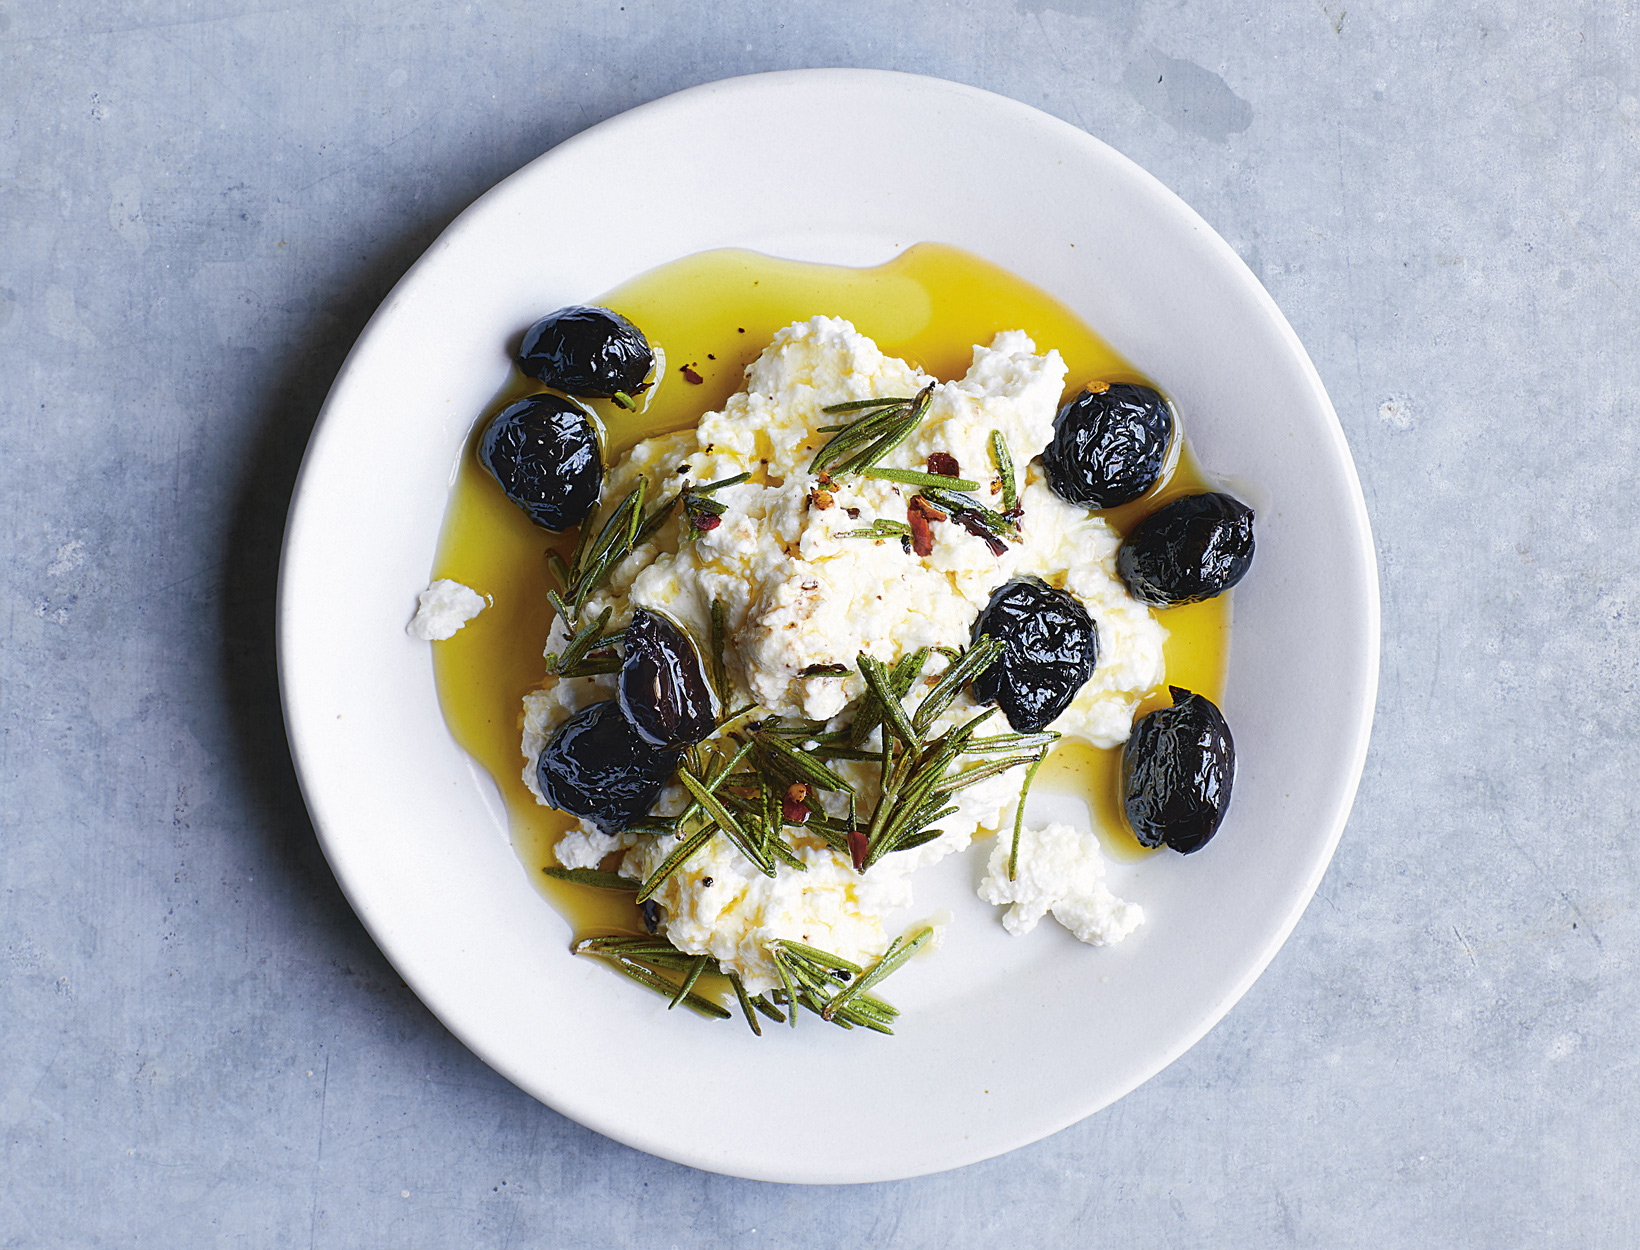 Ricotta, Pan-Fried Black Olives, and Rosemary